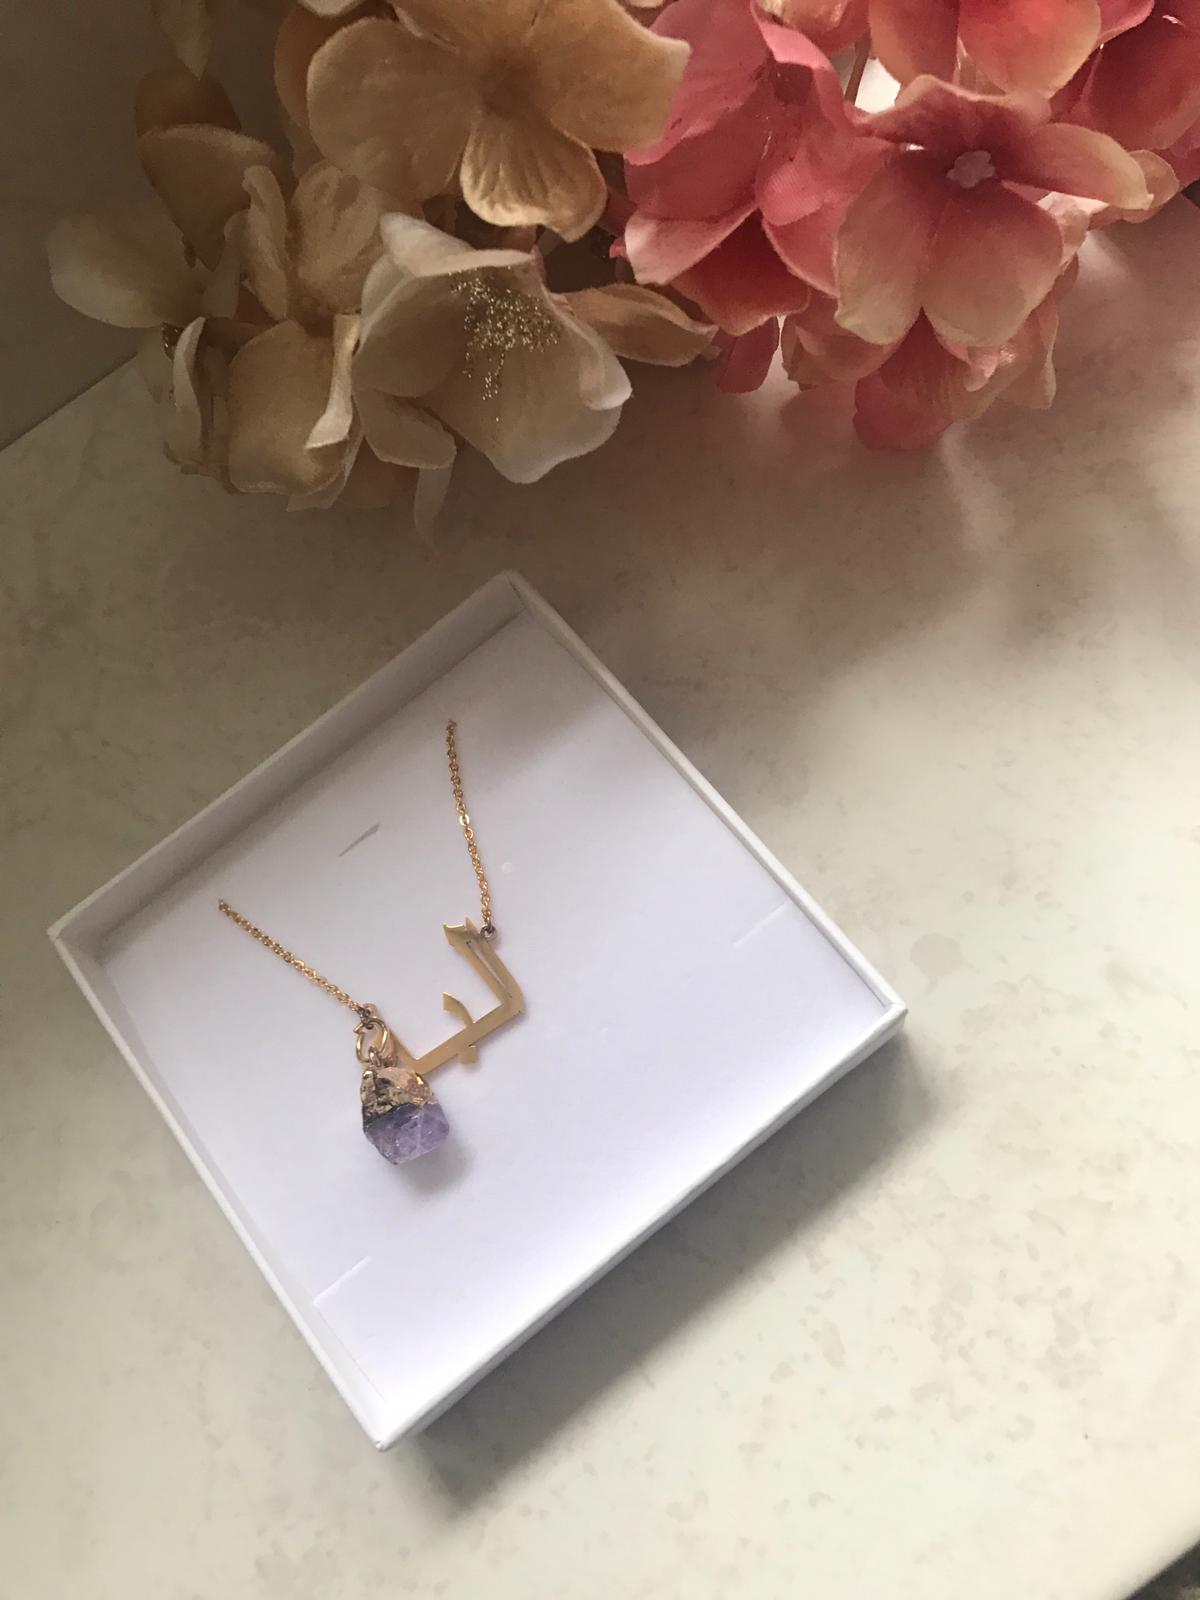 Customised Arabic Name Necklace with Amethyst Charm